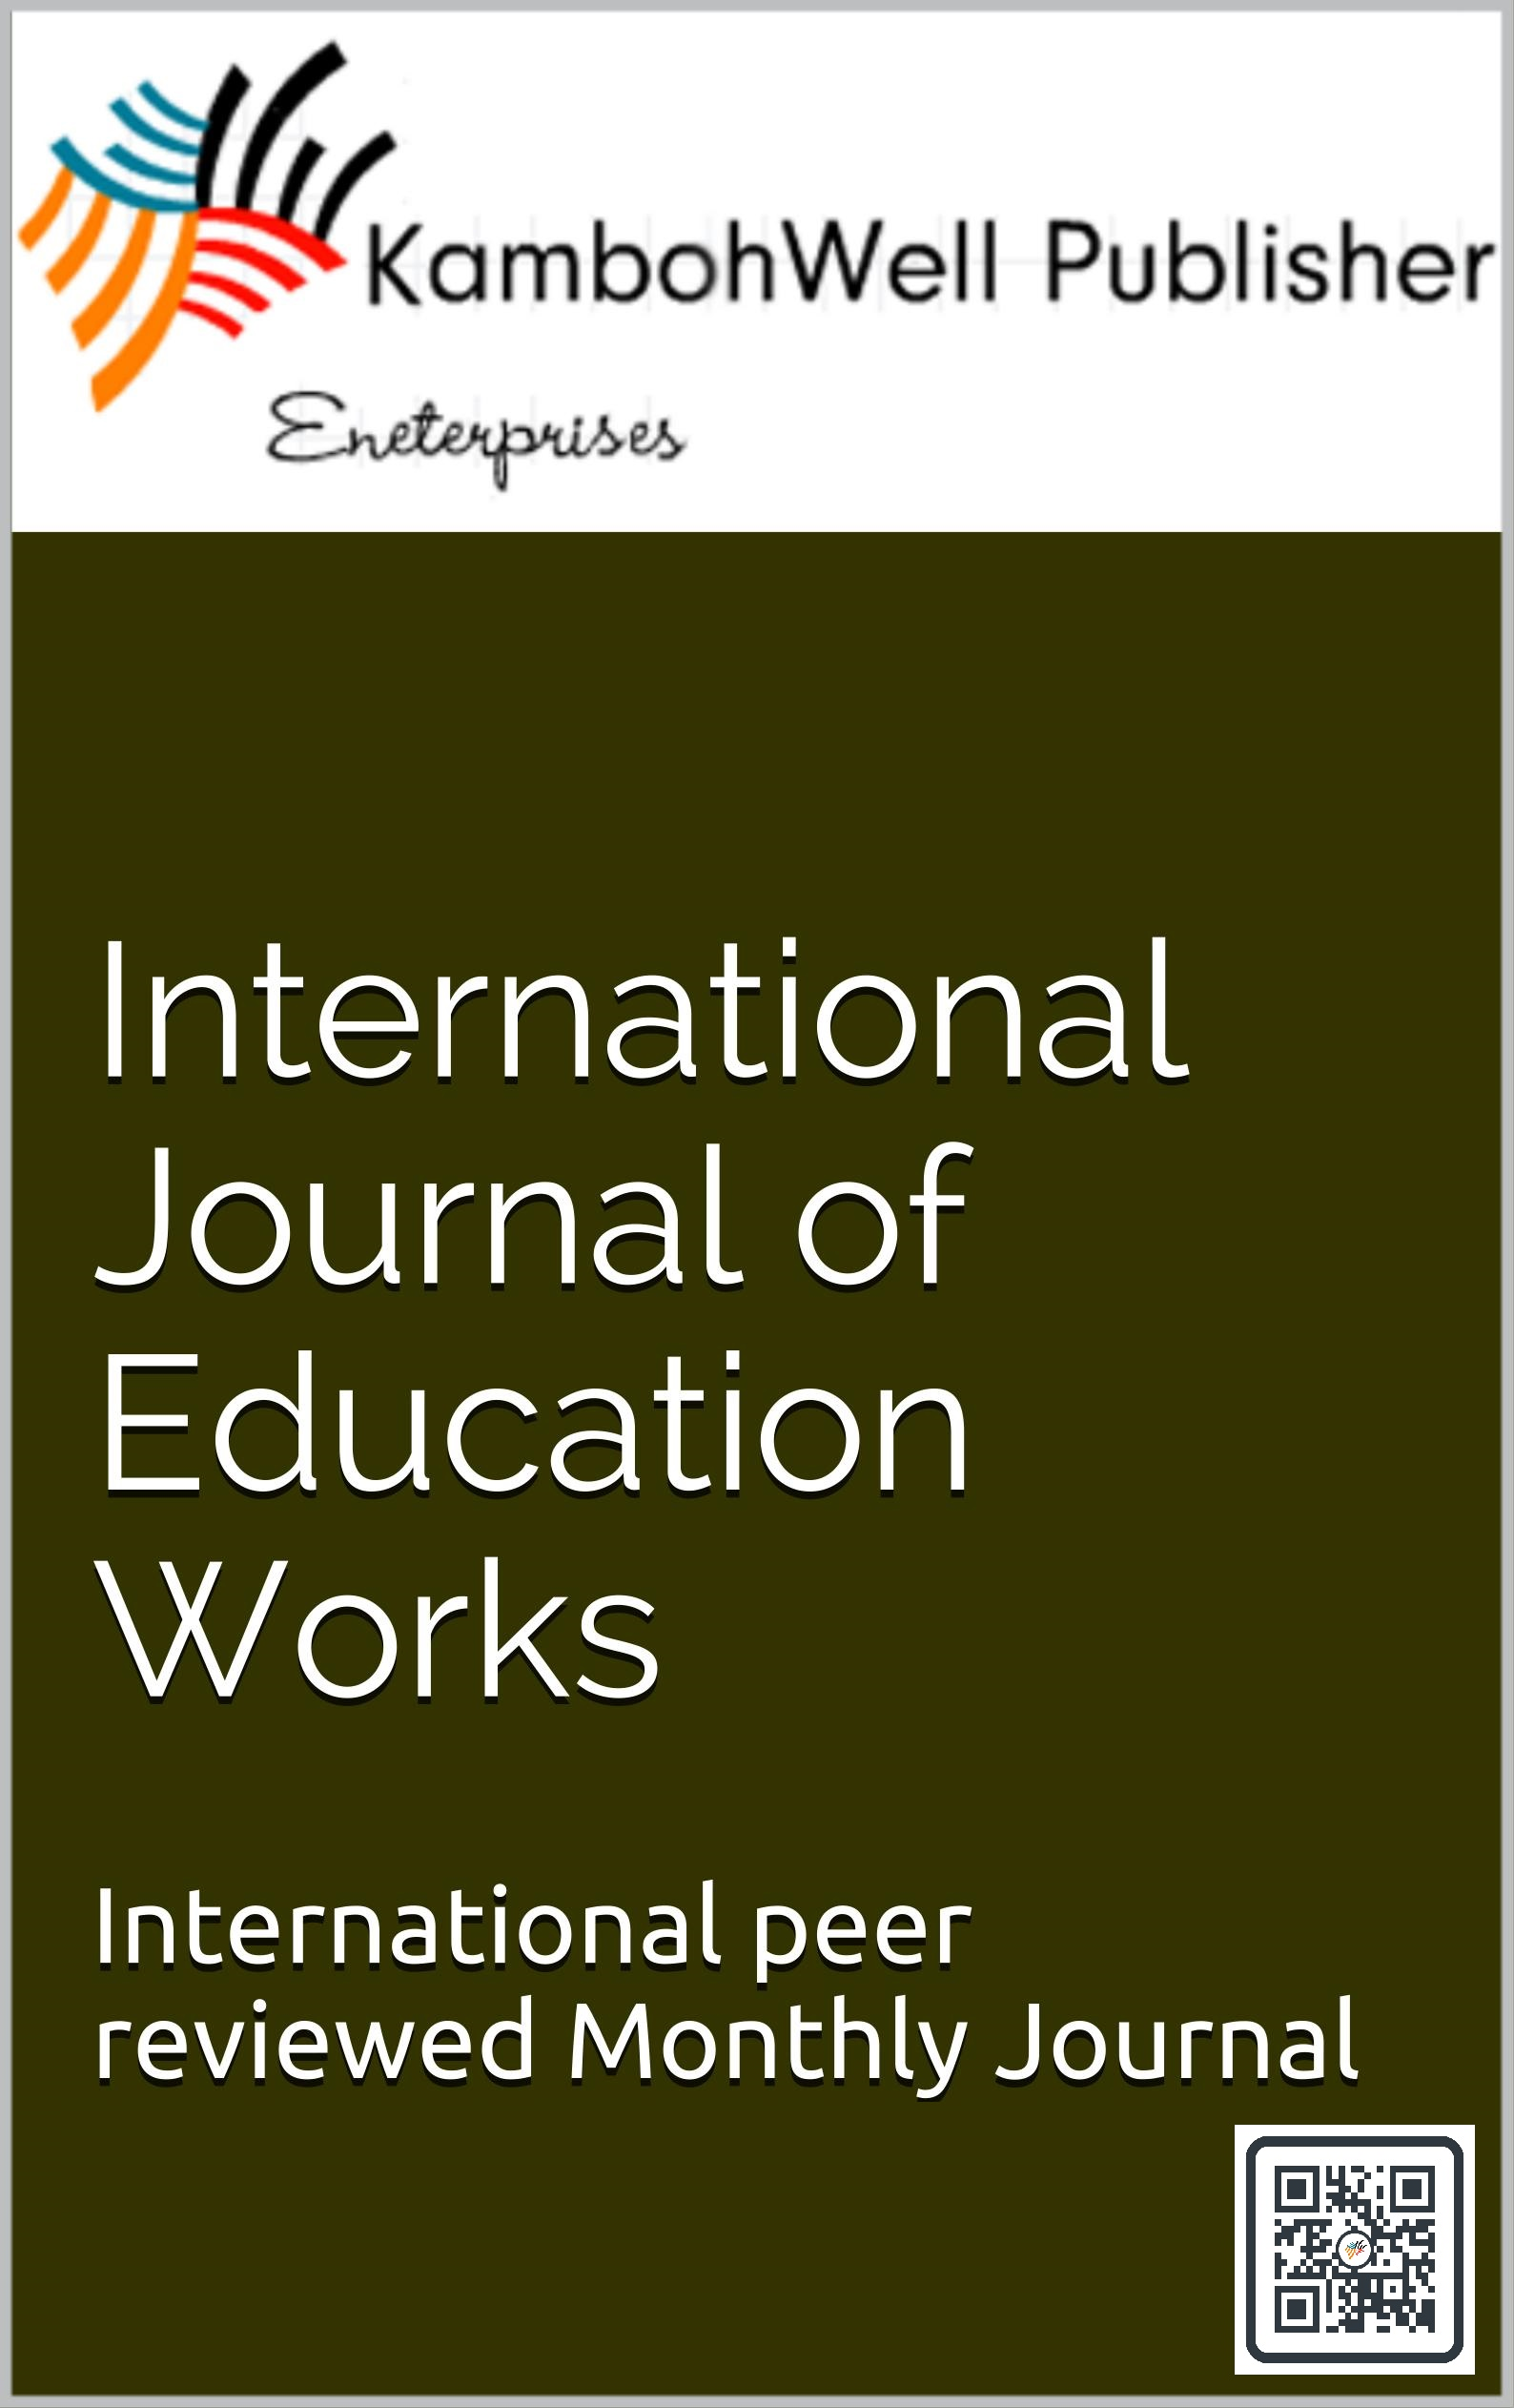 International Journal of Education Works